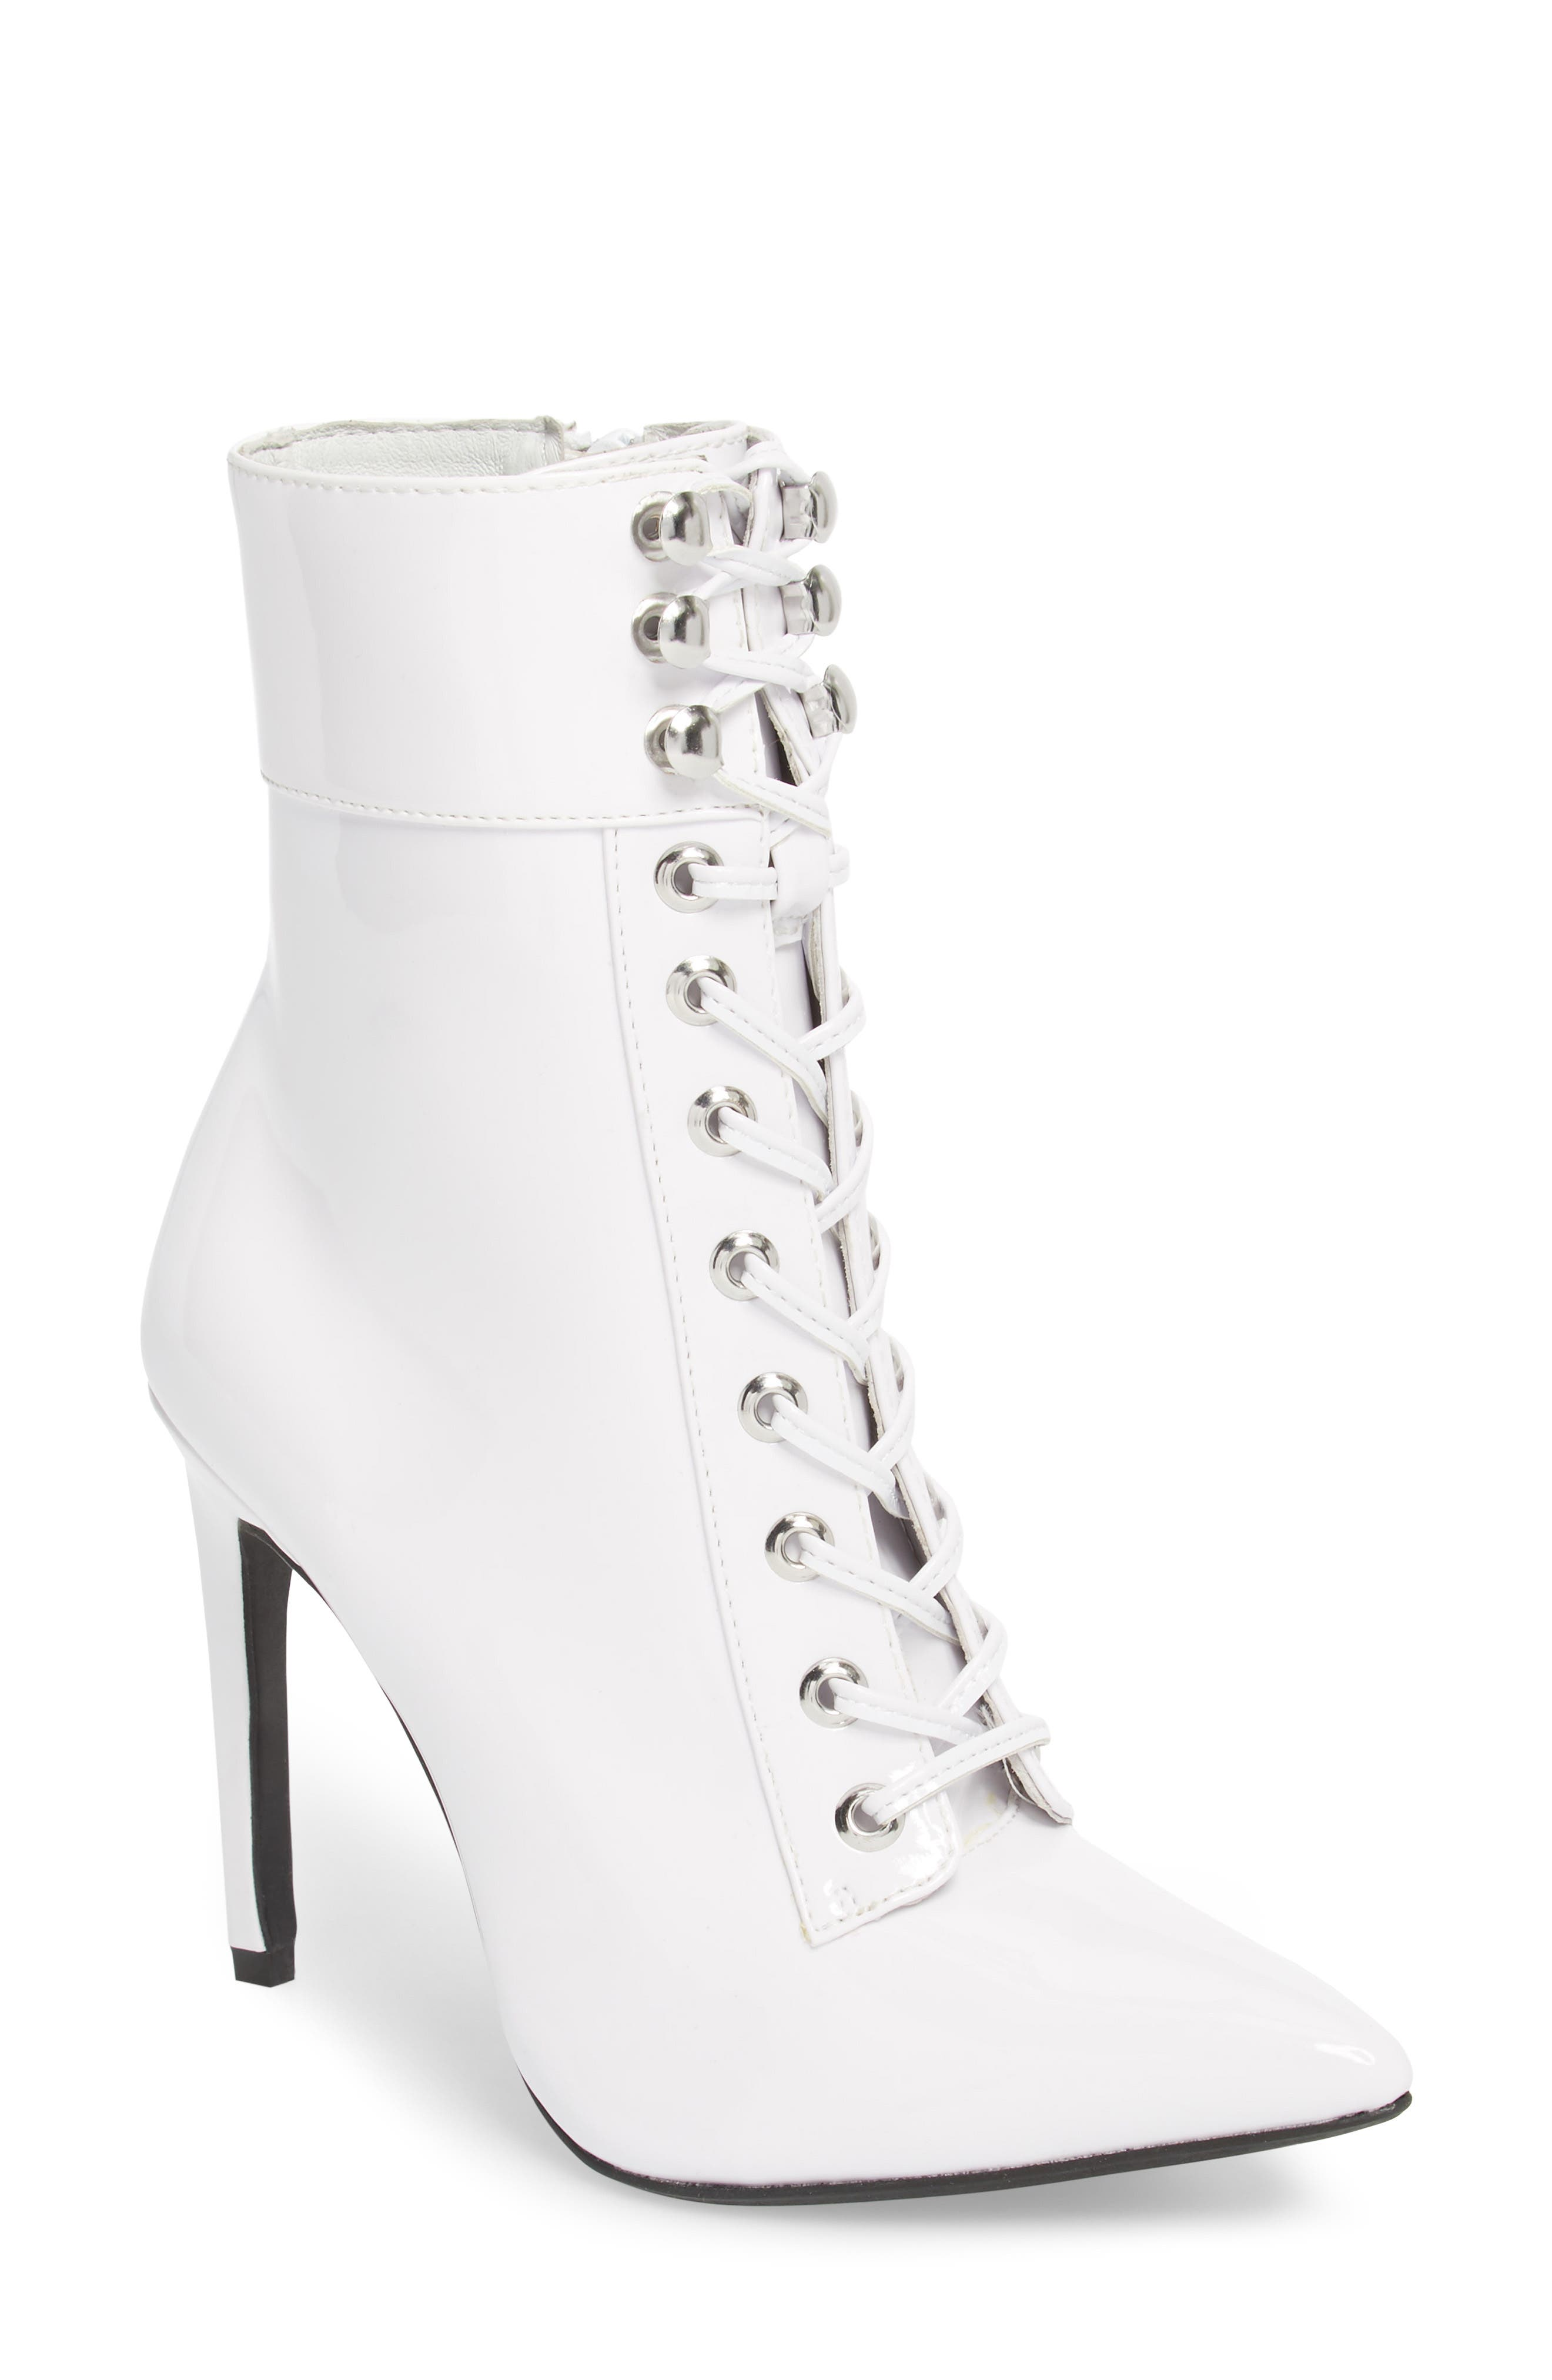 Elphaba-3 Bootie,                             Main thumbnail 1, color,                             White Patent